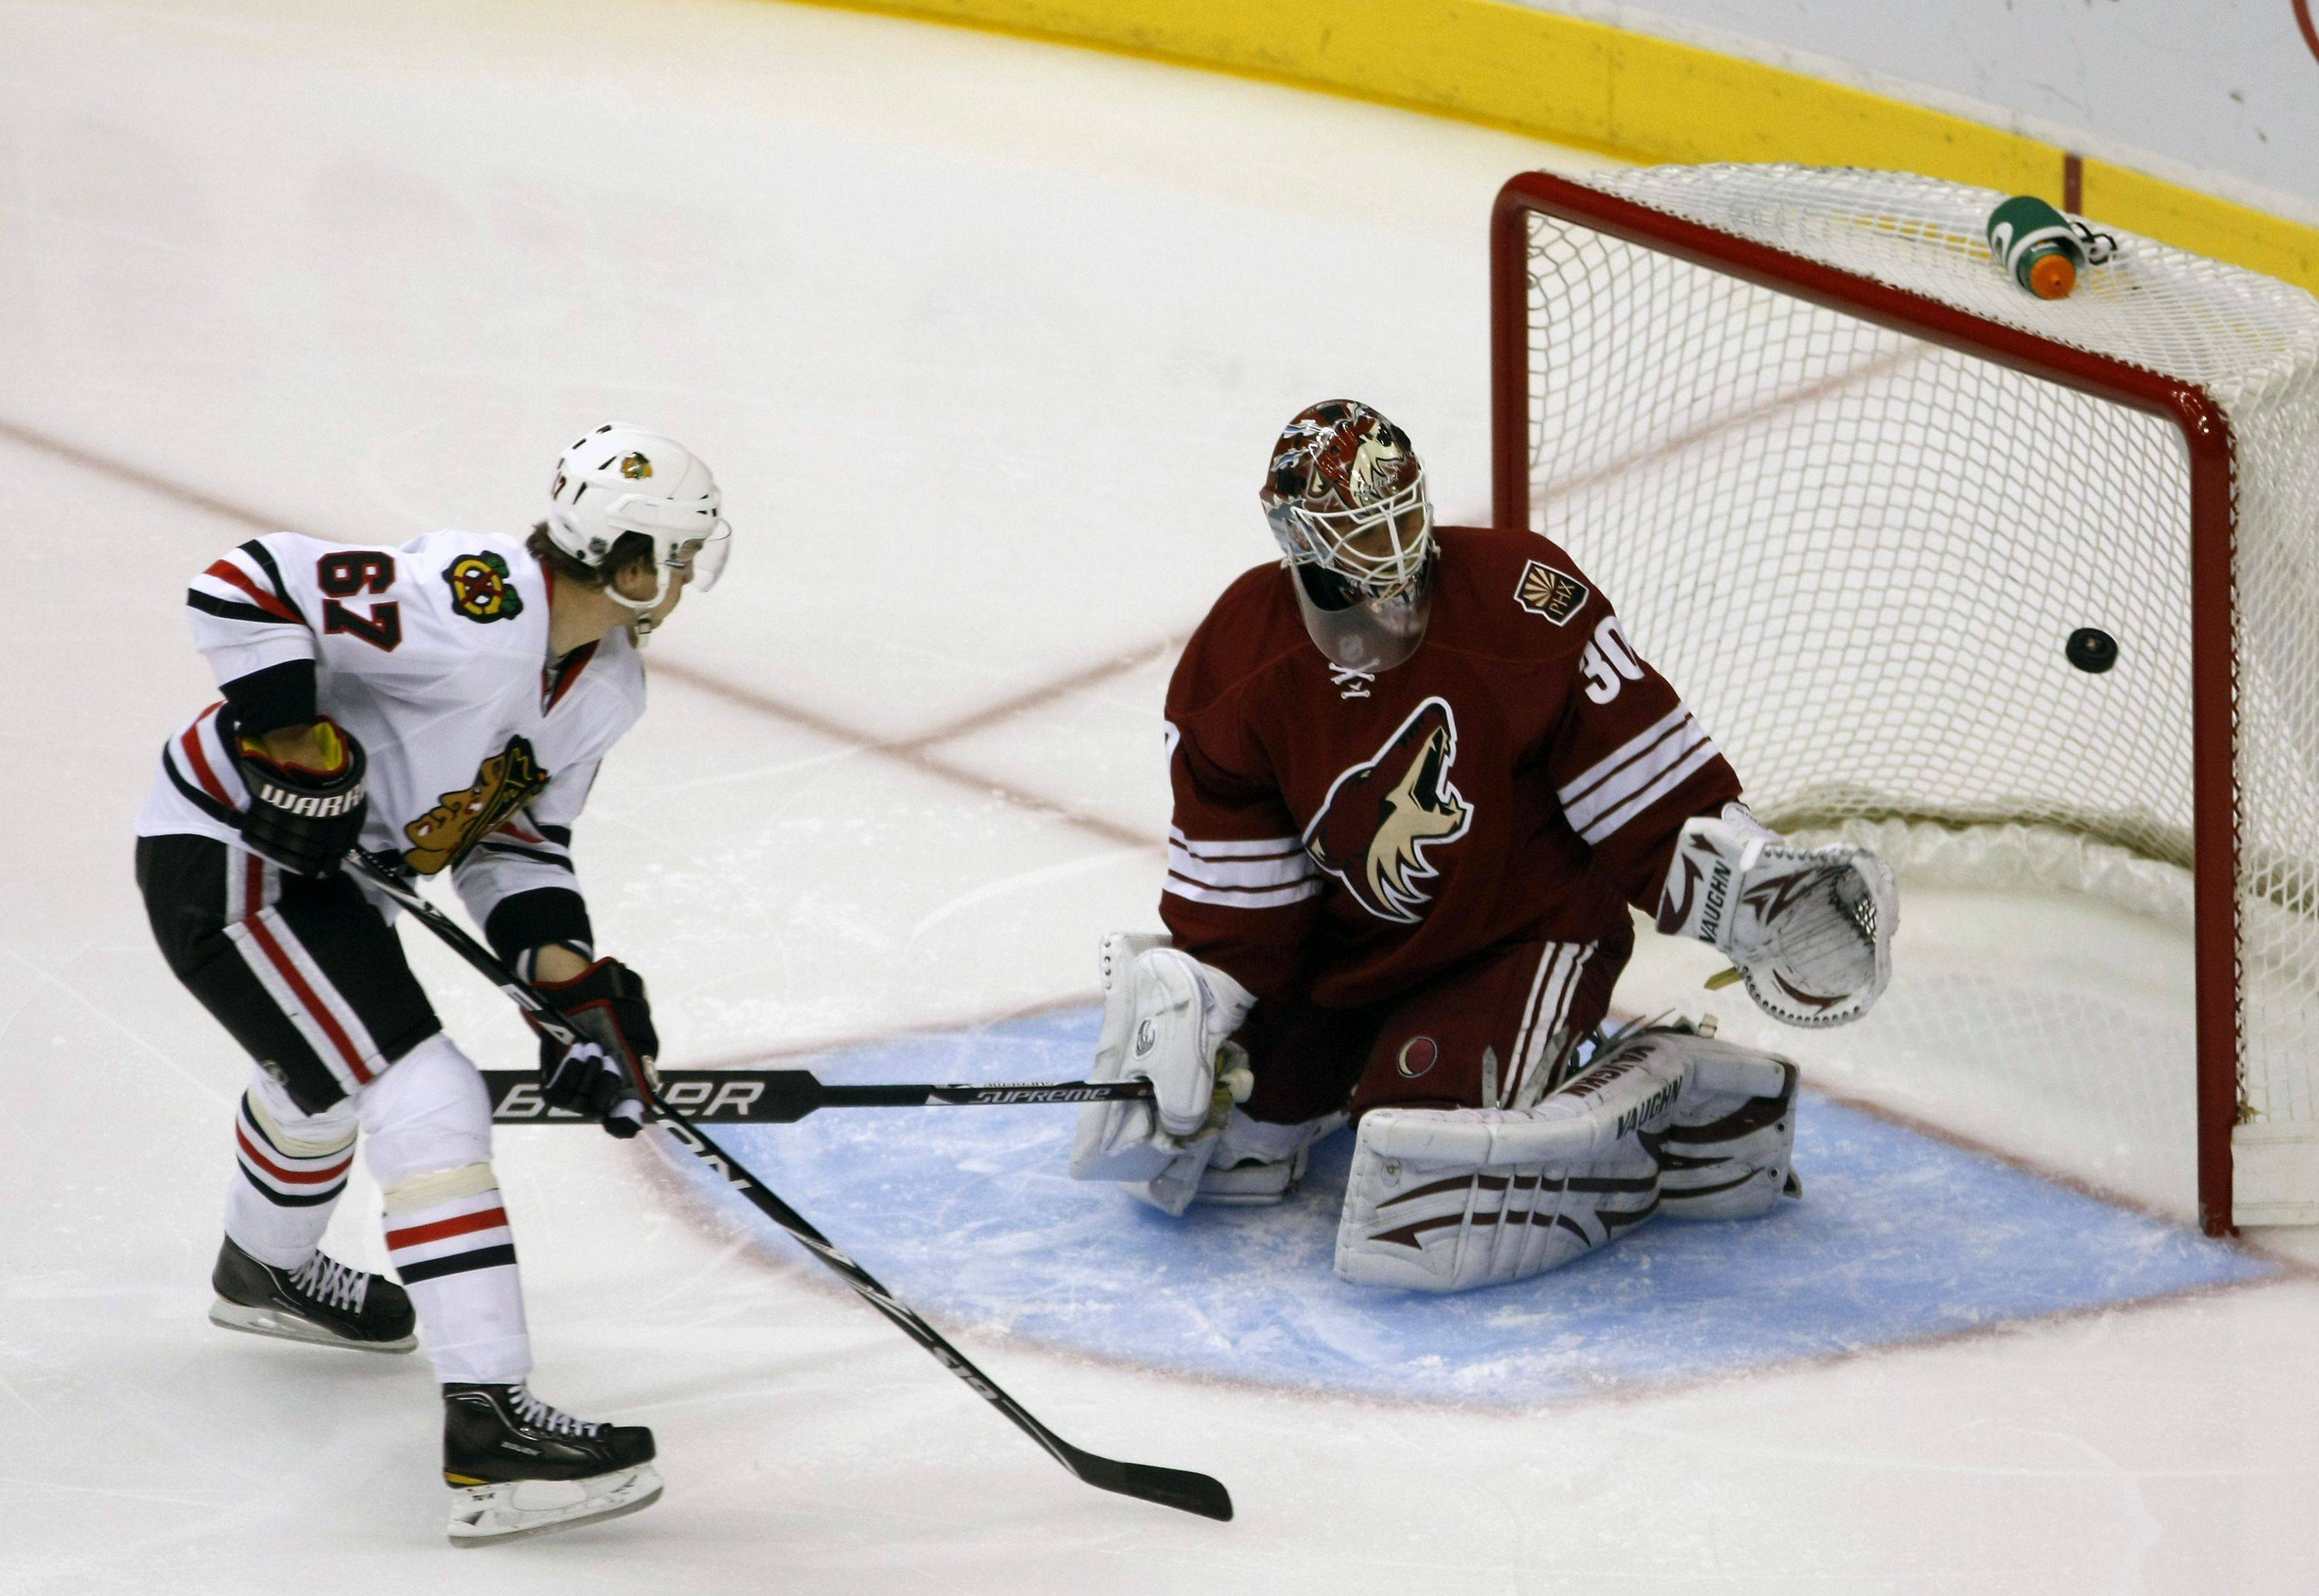 Chicago Blackhawks center Michael Frolik, left, of Czechoslovakia, shoots on Phoenix Coyotes goalie Ilya Bryzgalov of Russia, during the first period of an NHL hockey game on Sunday, March 20, 2011, in Glendale, Ariz.